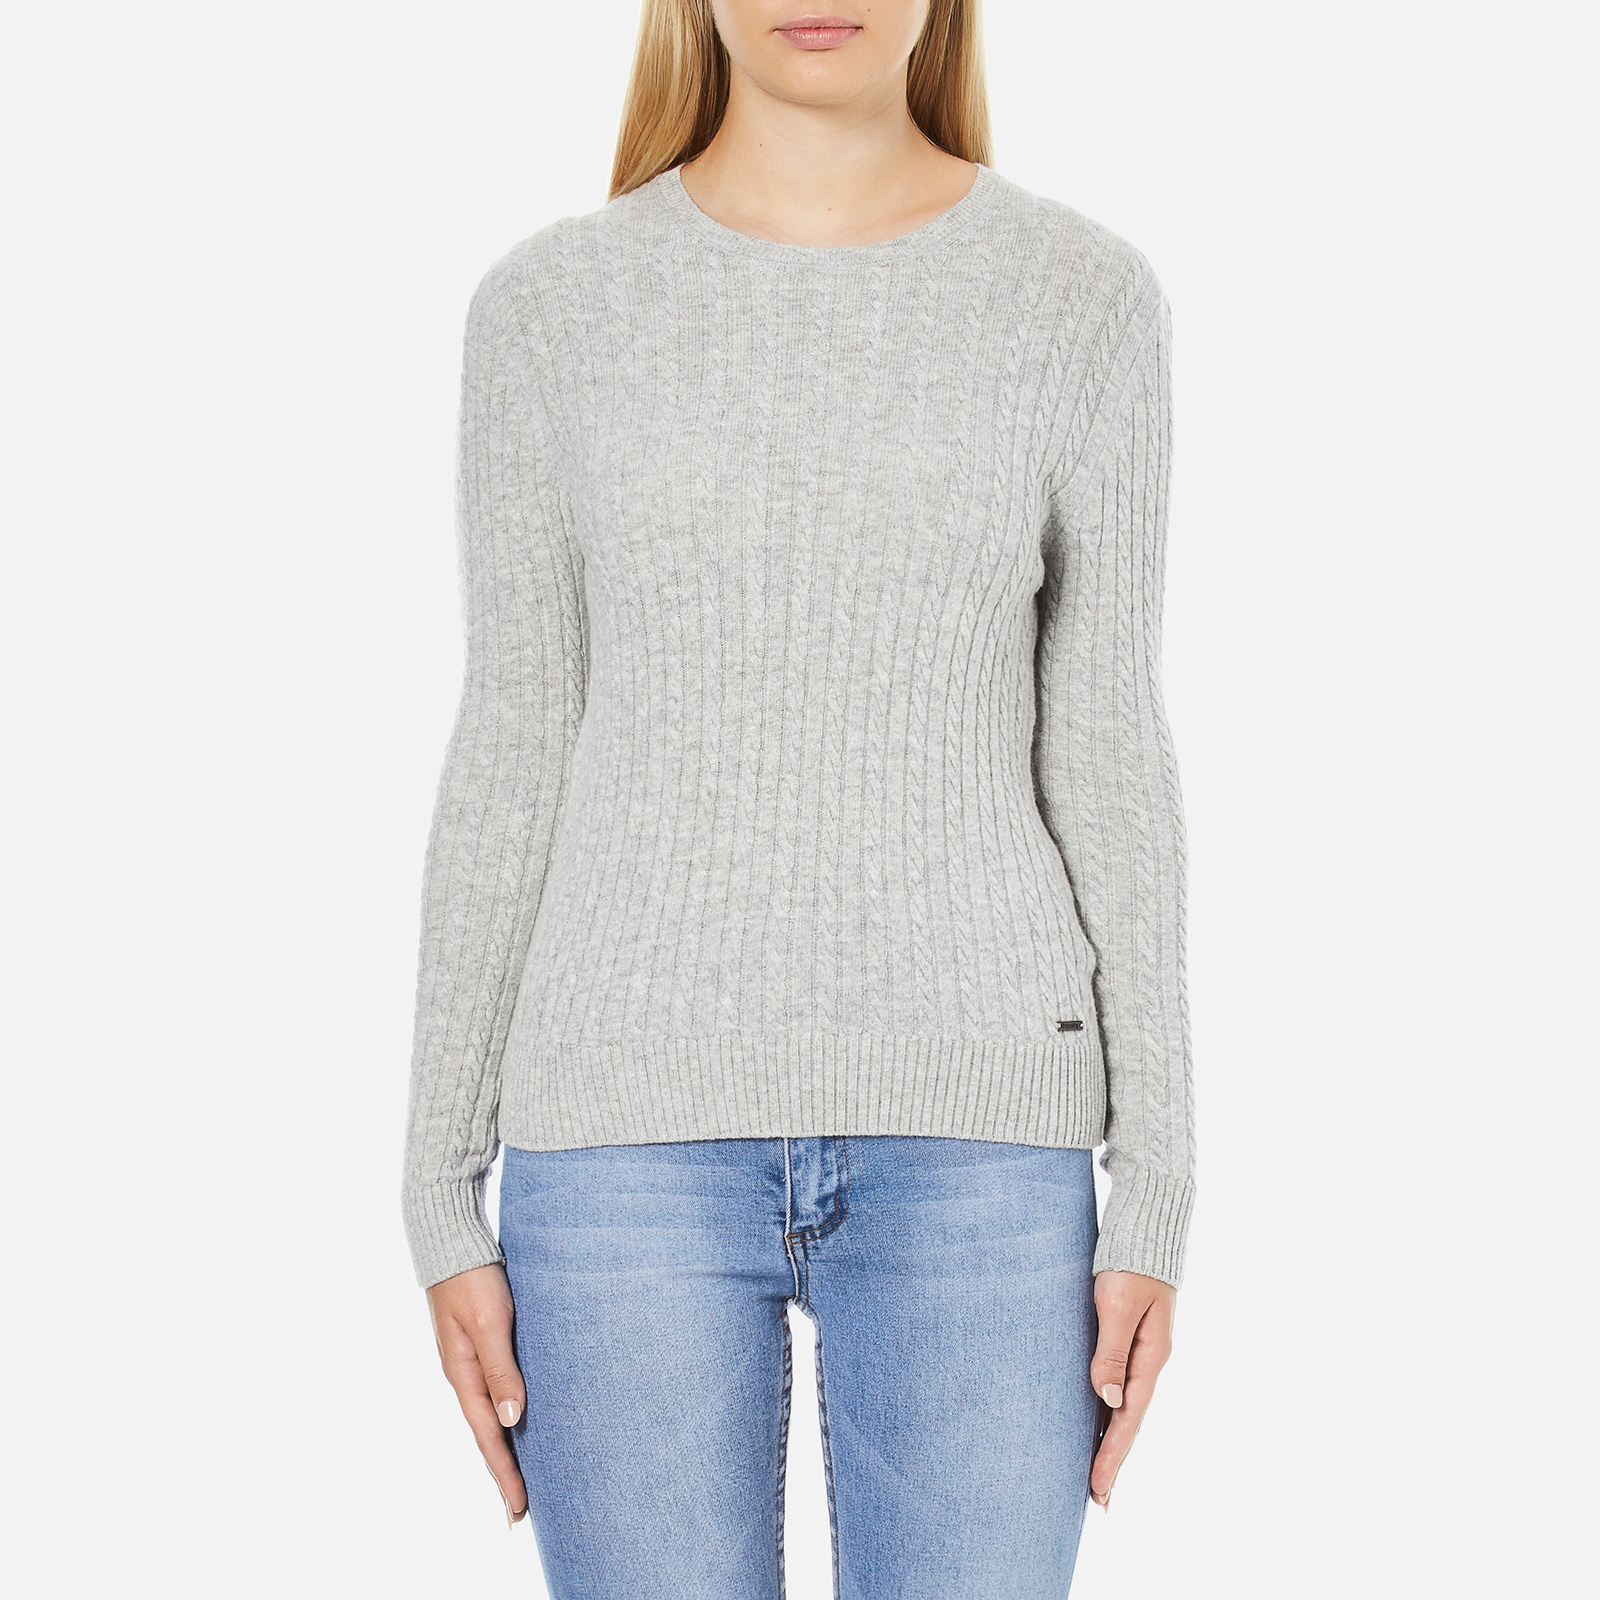 f6a67098e Superdry Women s Luxe Mini Cable Knit Jumper - Grey Marl Womens Clothing